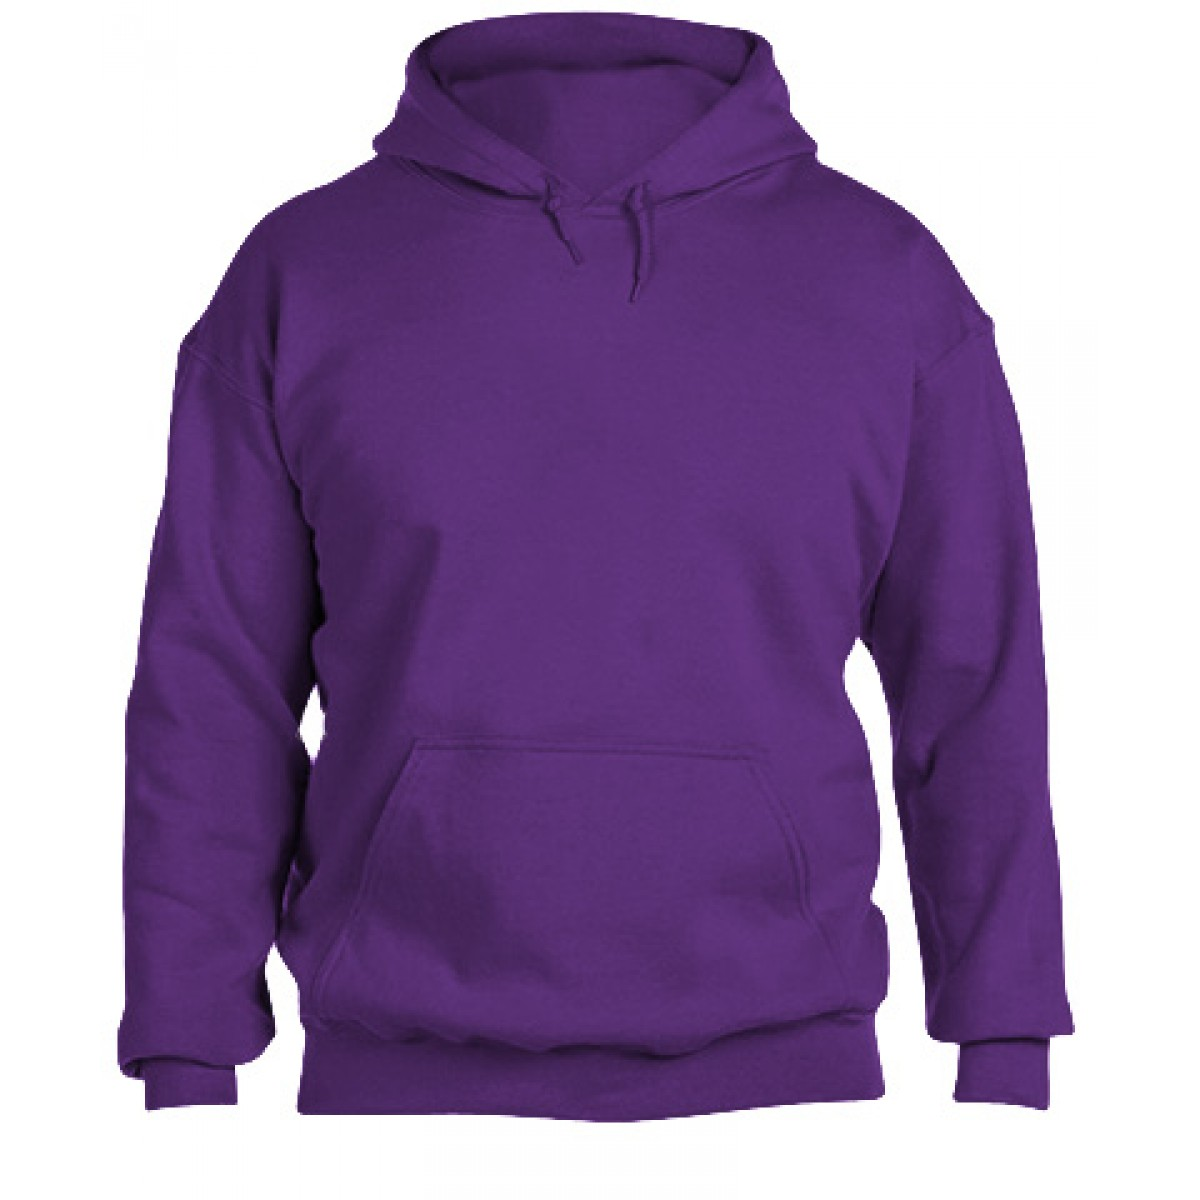 Hooded Sweatshirt 50/50 Heavy Blend -Purple-M